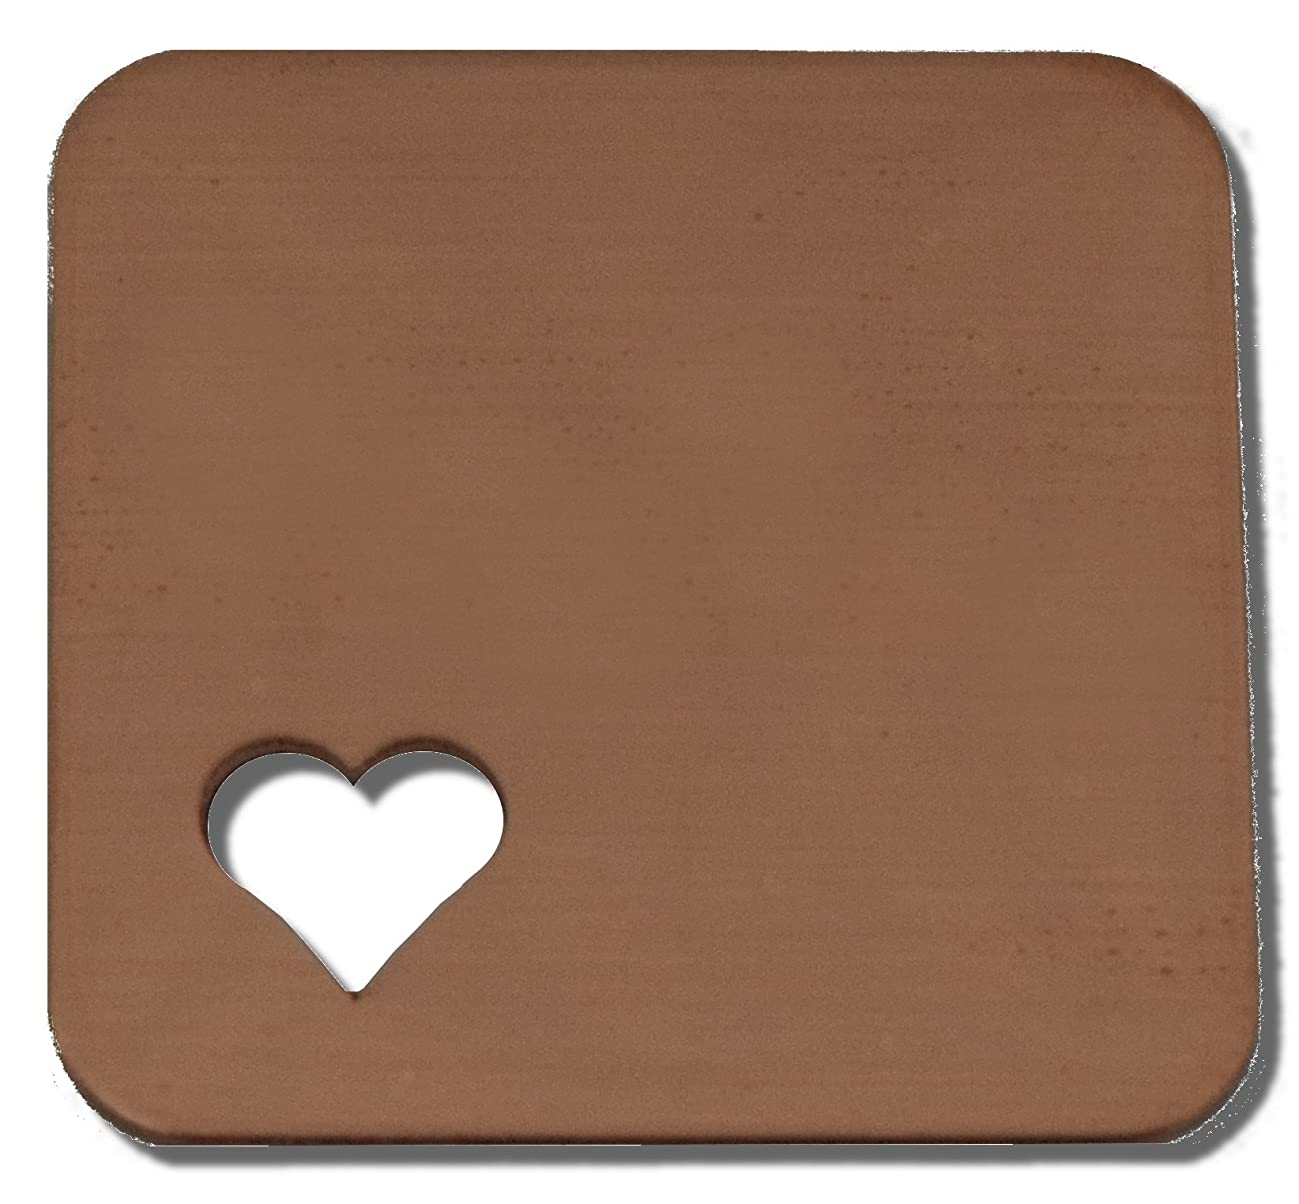 RMP Stamping Blanks, 1 Inch Square With Radius Corners, 1/4 Inch Heart - Bottom Left Corner - 16 Oz. Copper, 24 Gauge - 10 Pack